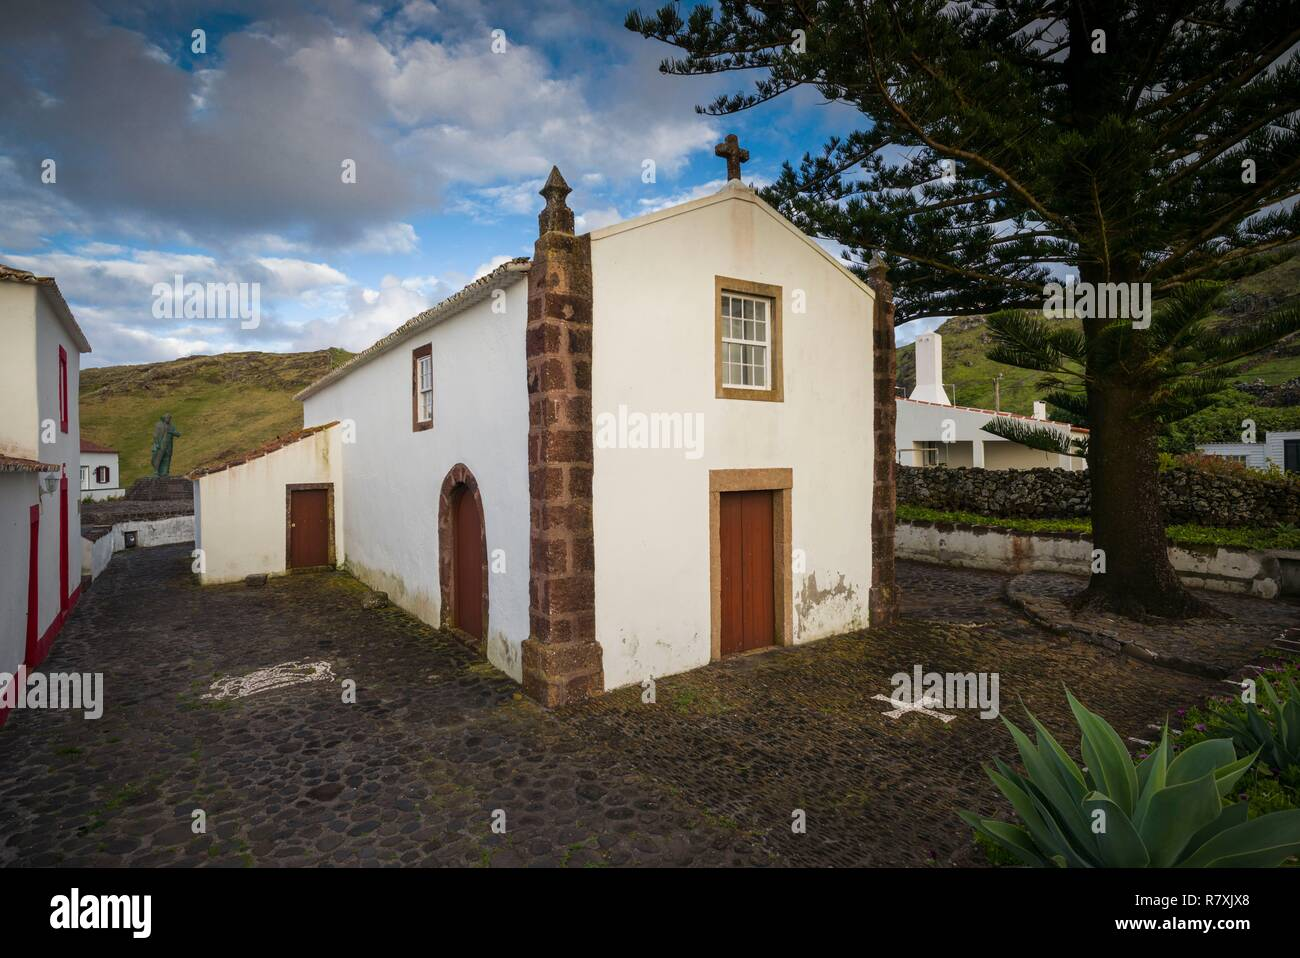 Portugal, Azores, Santa Maria Island, Anjos, place where Christopher Columbus made landfall after discovering the New World, Igreja Nossa Senhora dos Anjos, first church in the Azores, 15th century - Stock Image